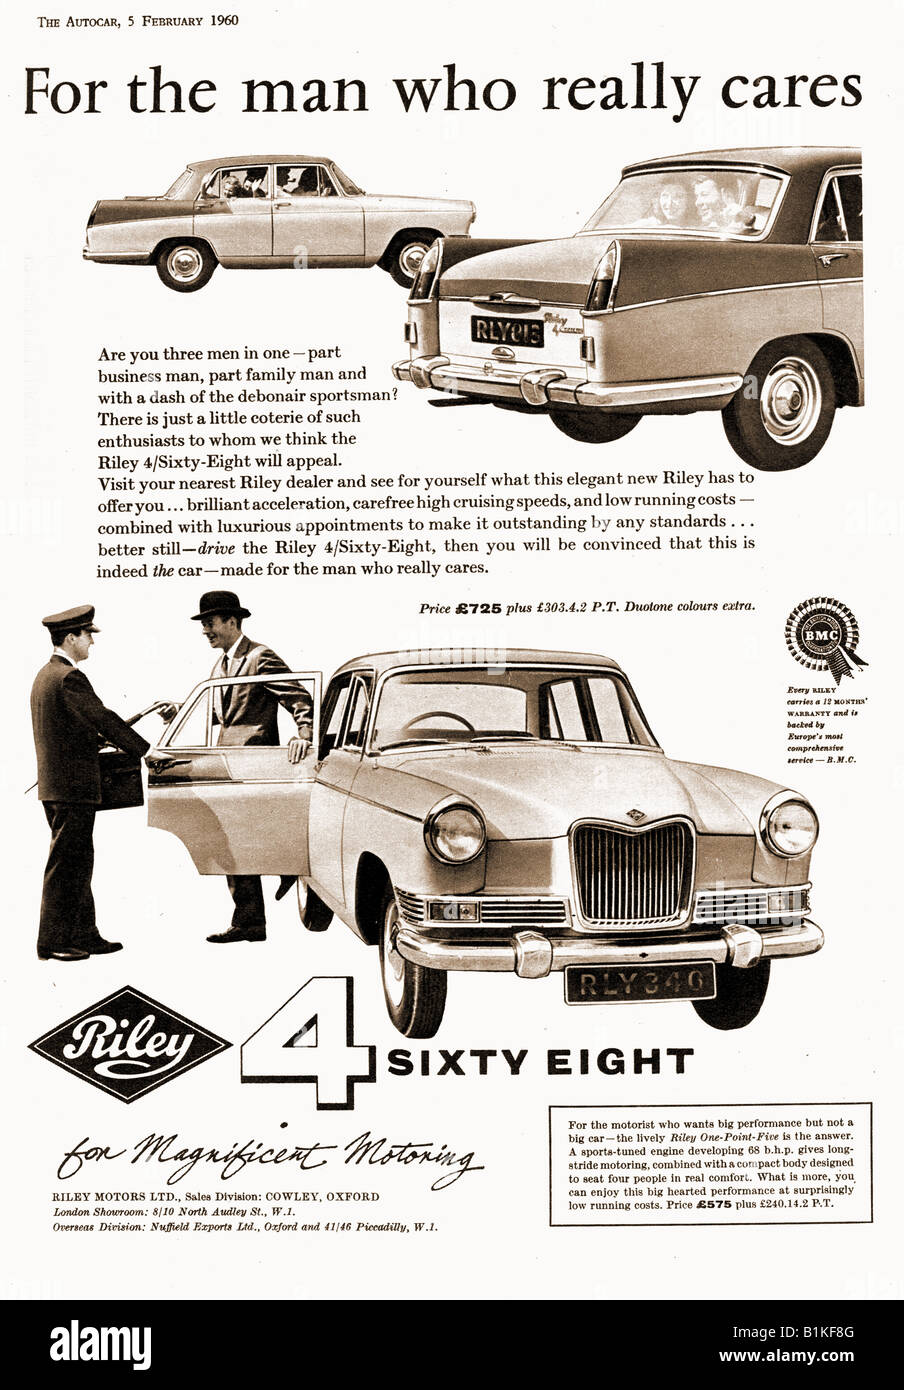 1960 advertisement for Riley 4 Sixty Eight Motor Cars 1960 FOR EDITORIAL USE ONLY - Stock Image